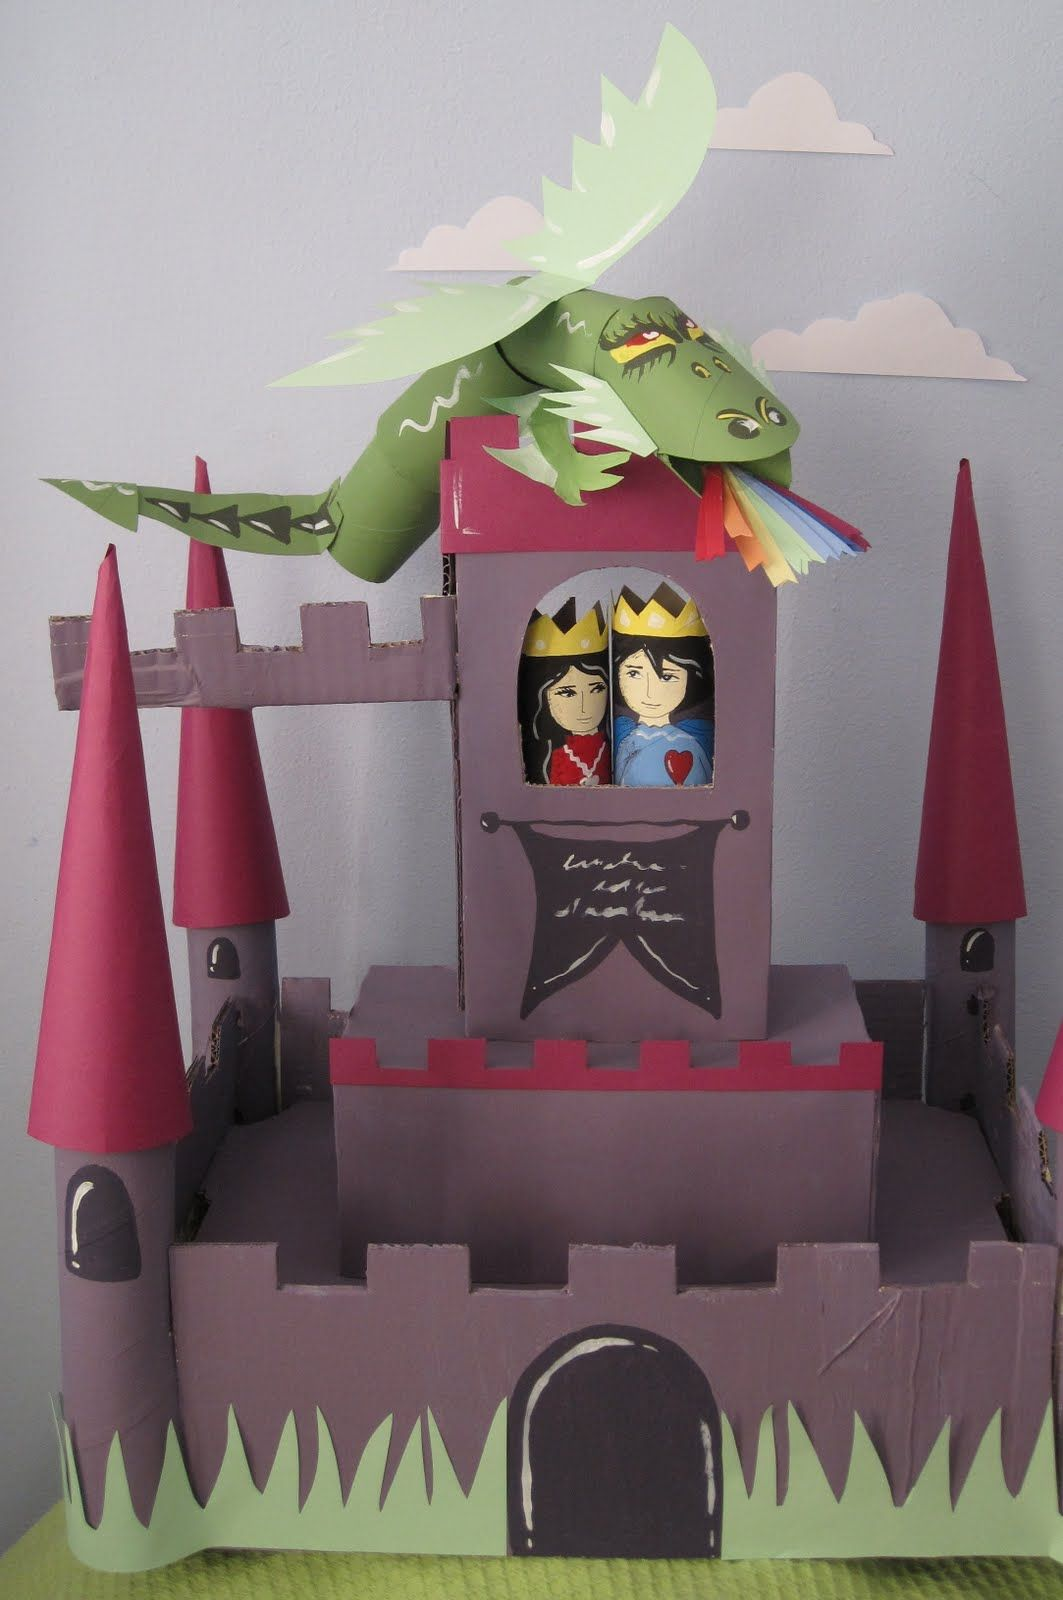 Everyday Muebles Rey Paper Castle 2 Manumanie Kids Castello Di Cartone